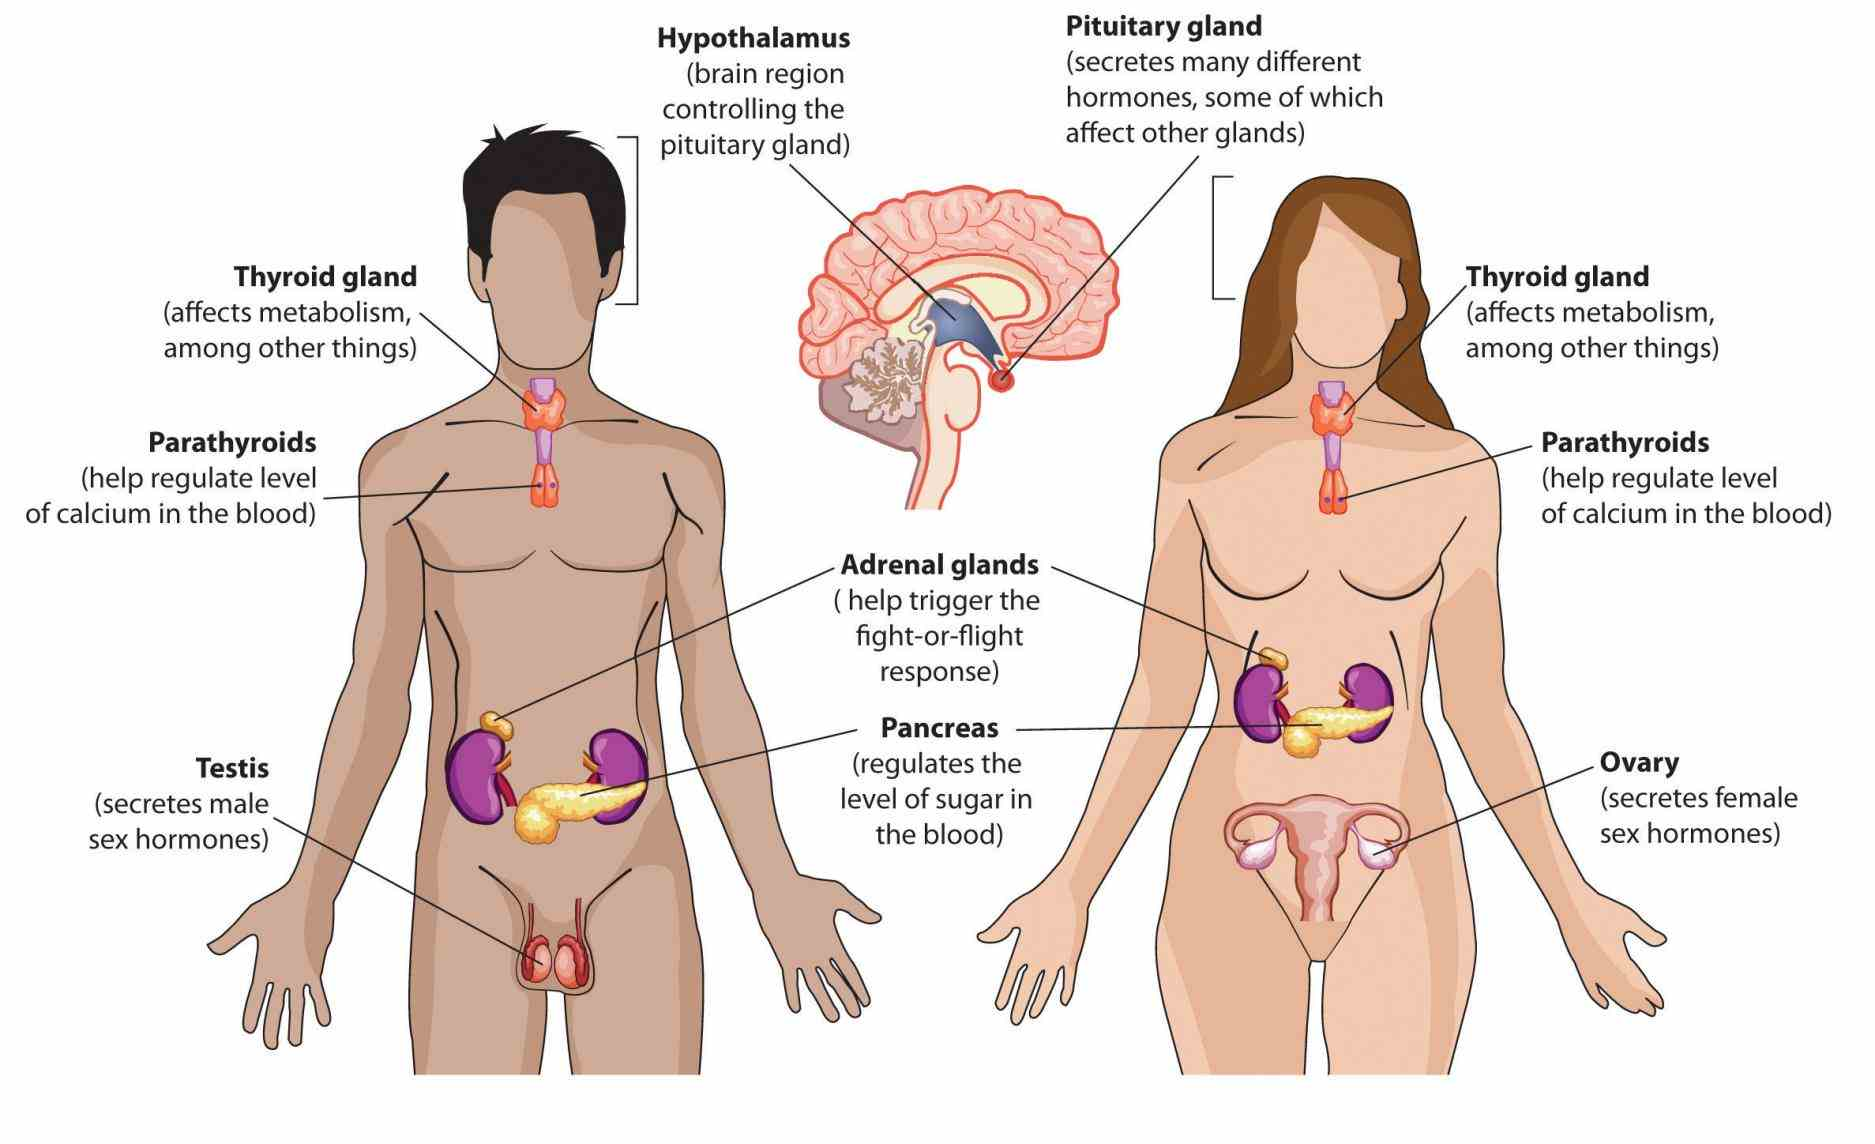 study for our test on the endocrine system learn with flashcards games and more — free what Endocrine System